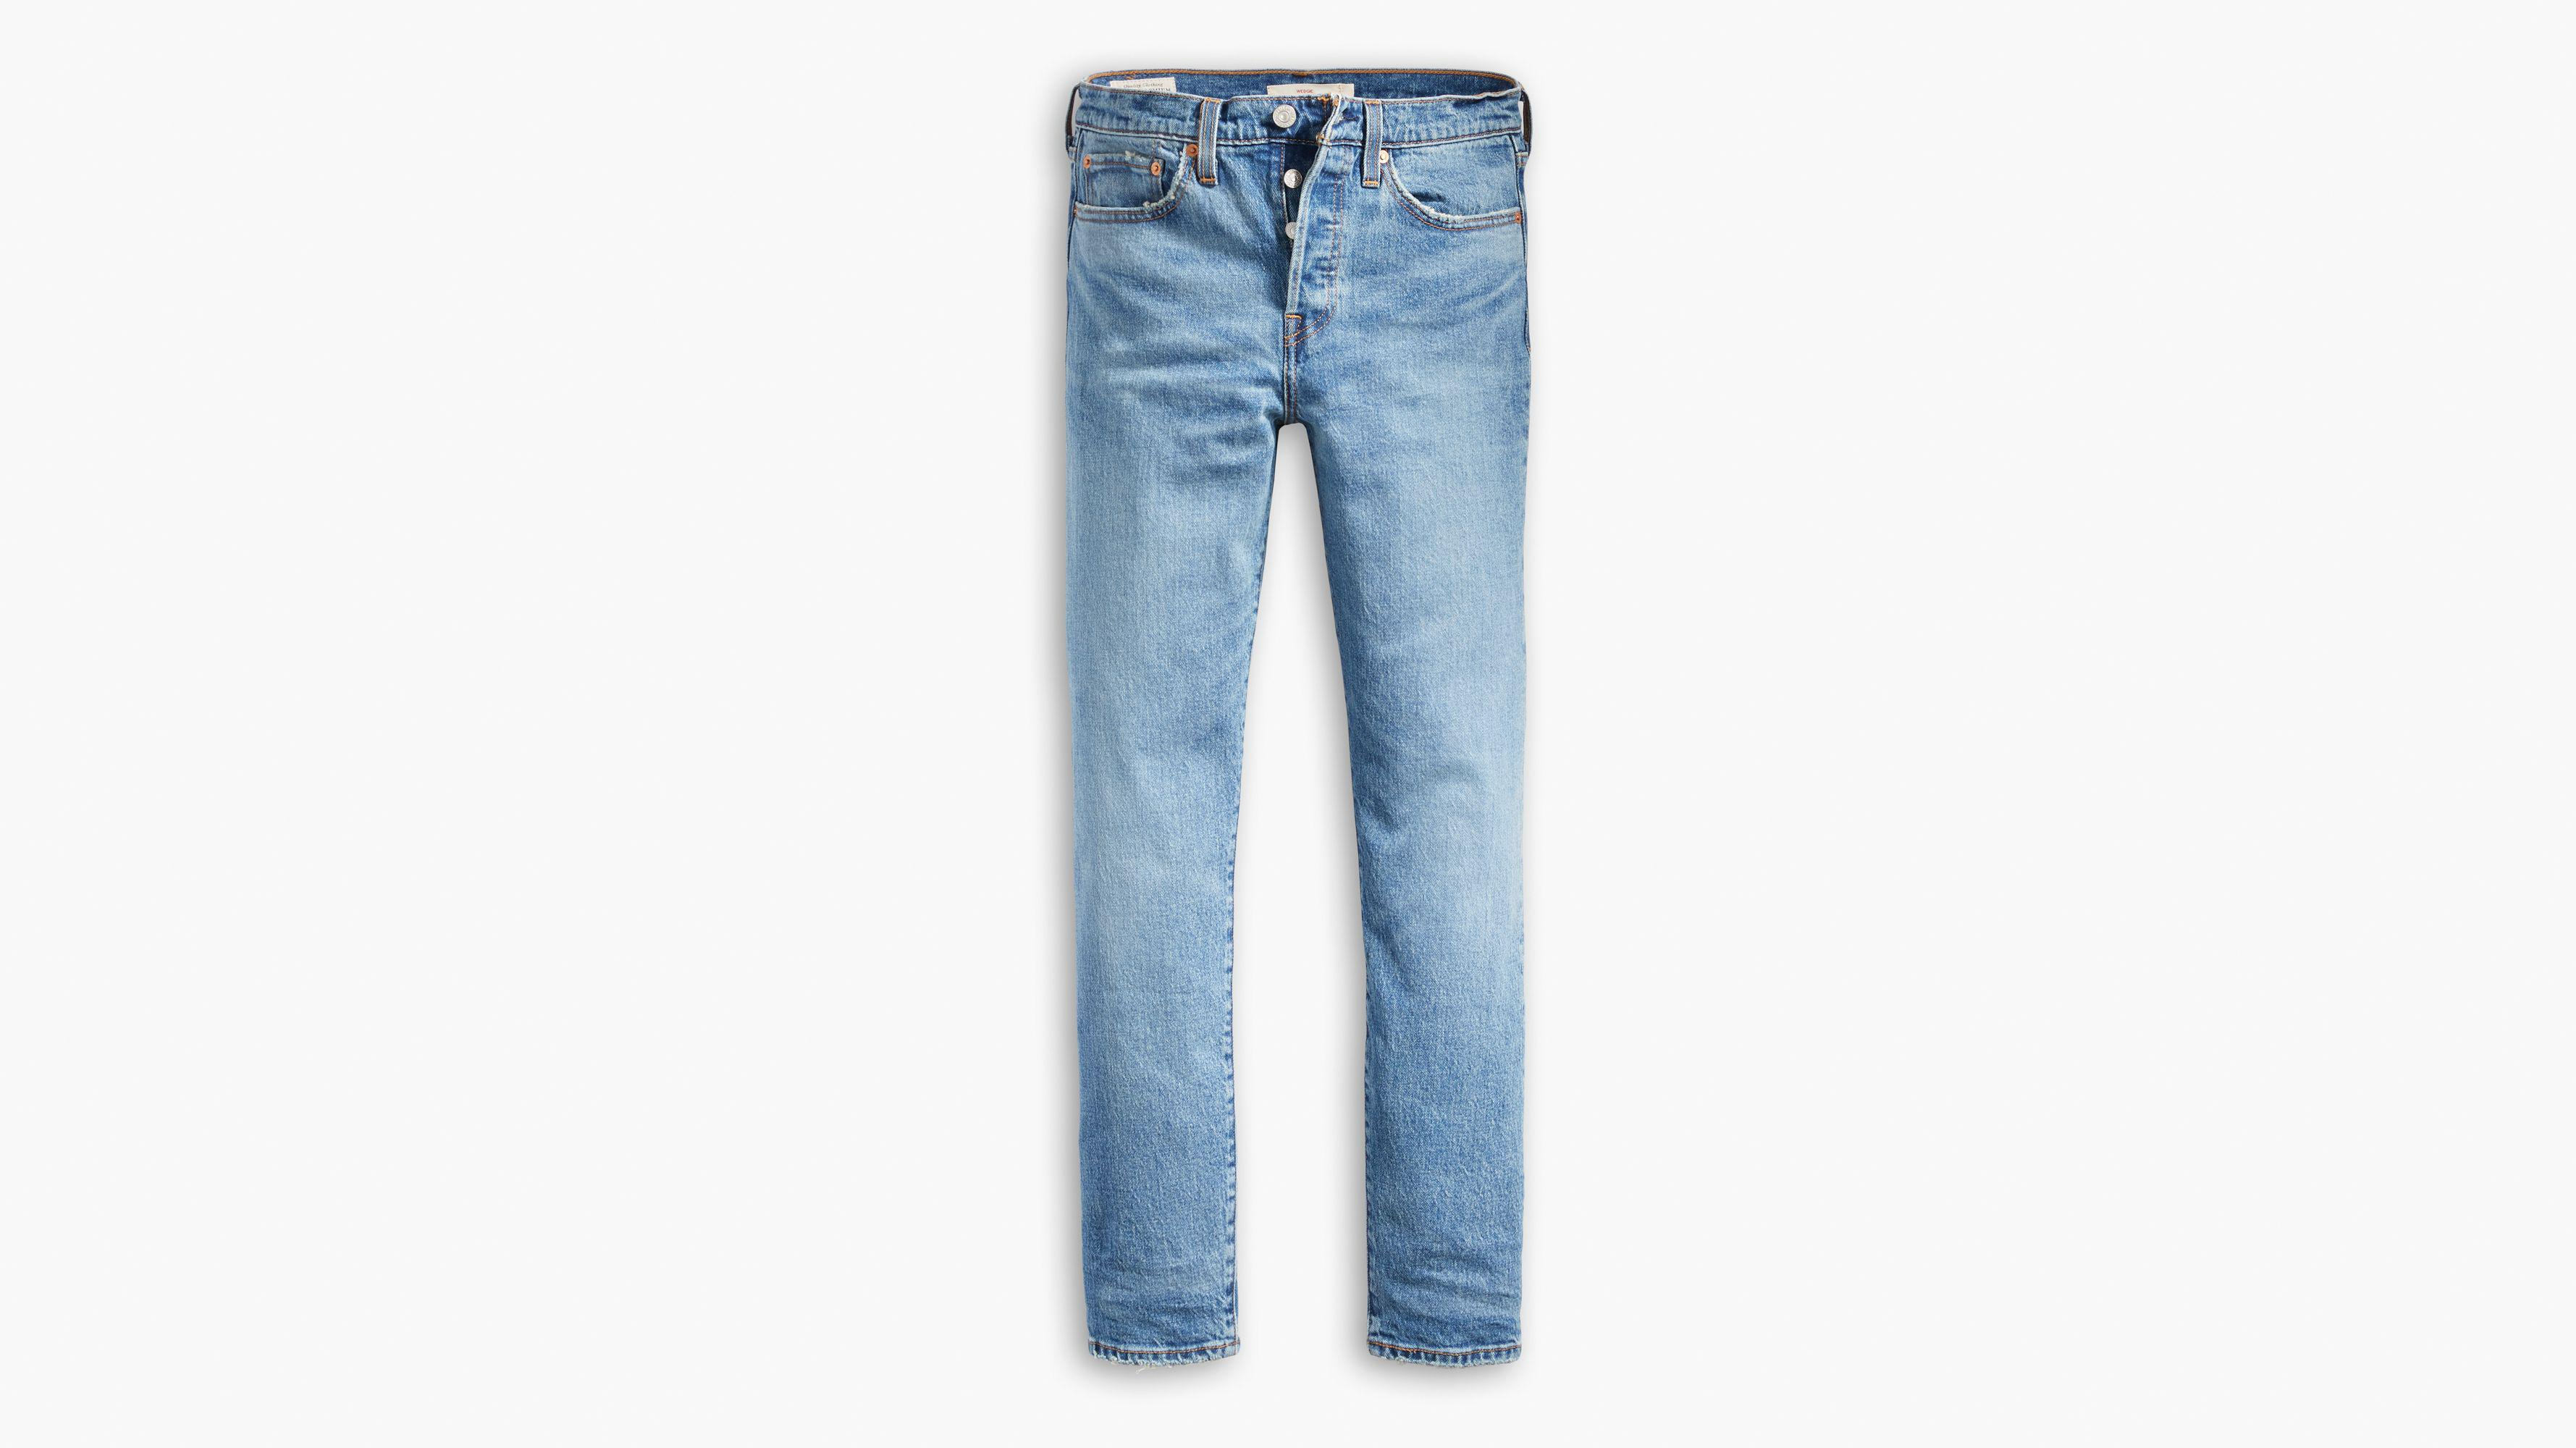 Wedgie Fit Ankle Women's Jeans 3